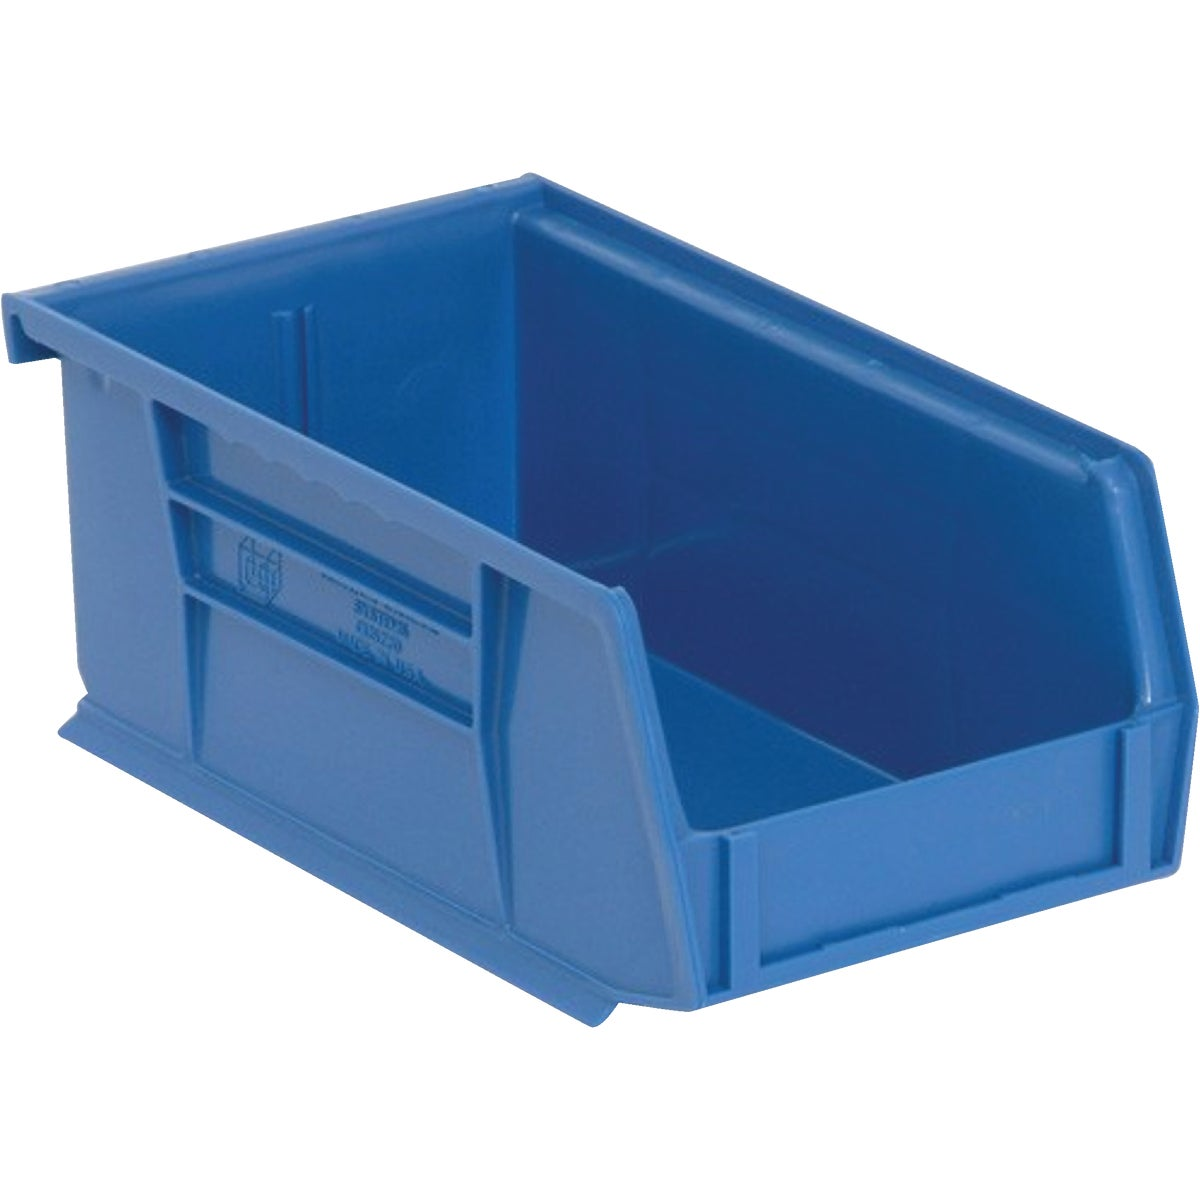 SMALL BLUE STORAGE BIN